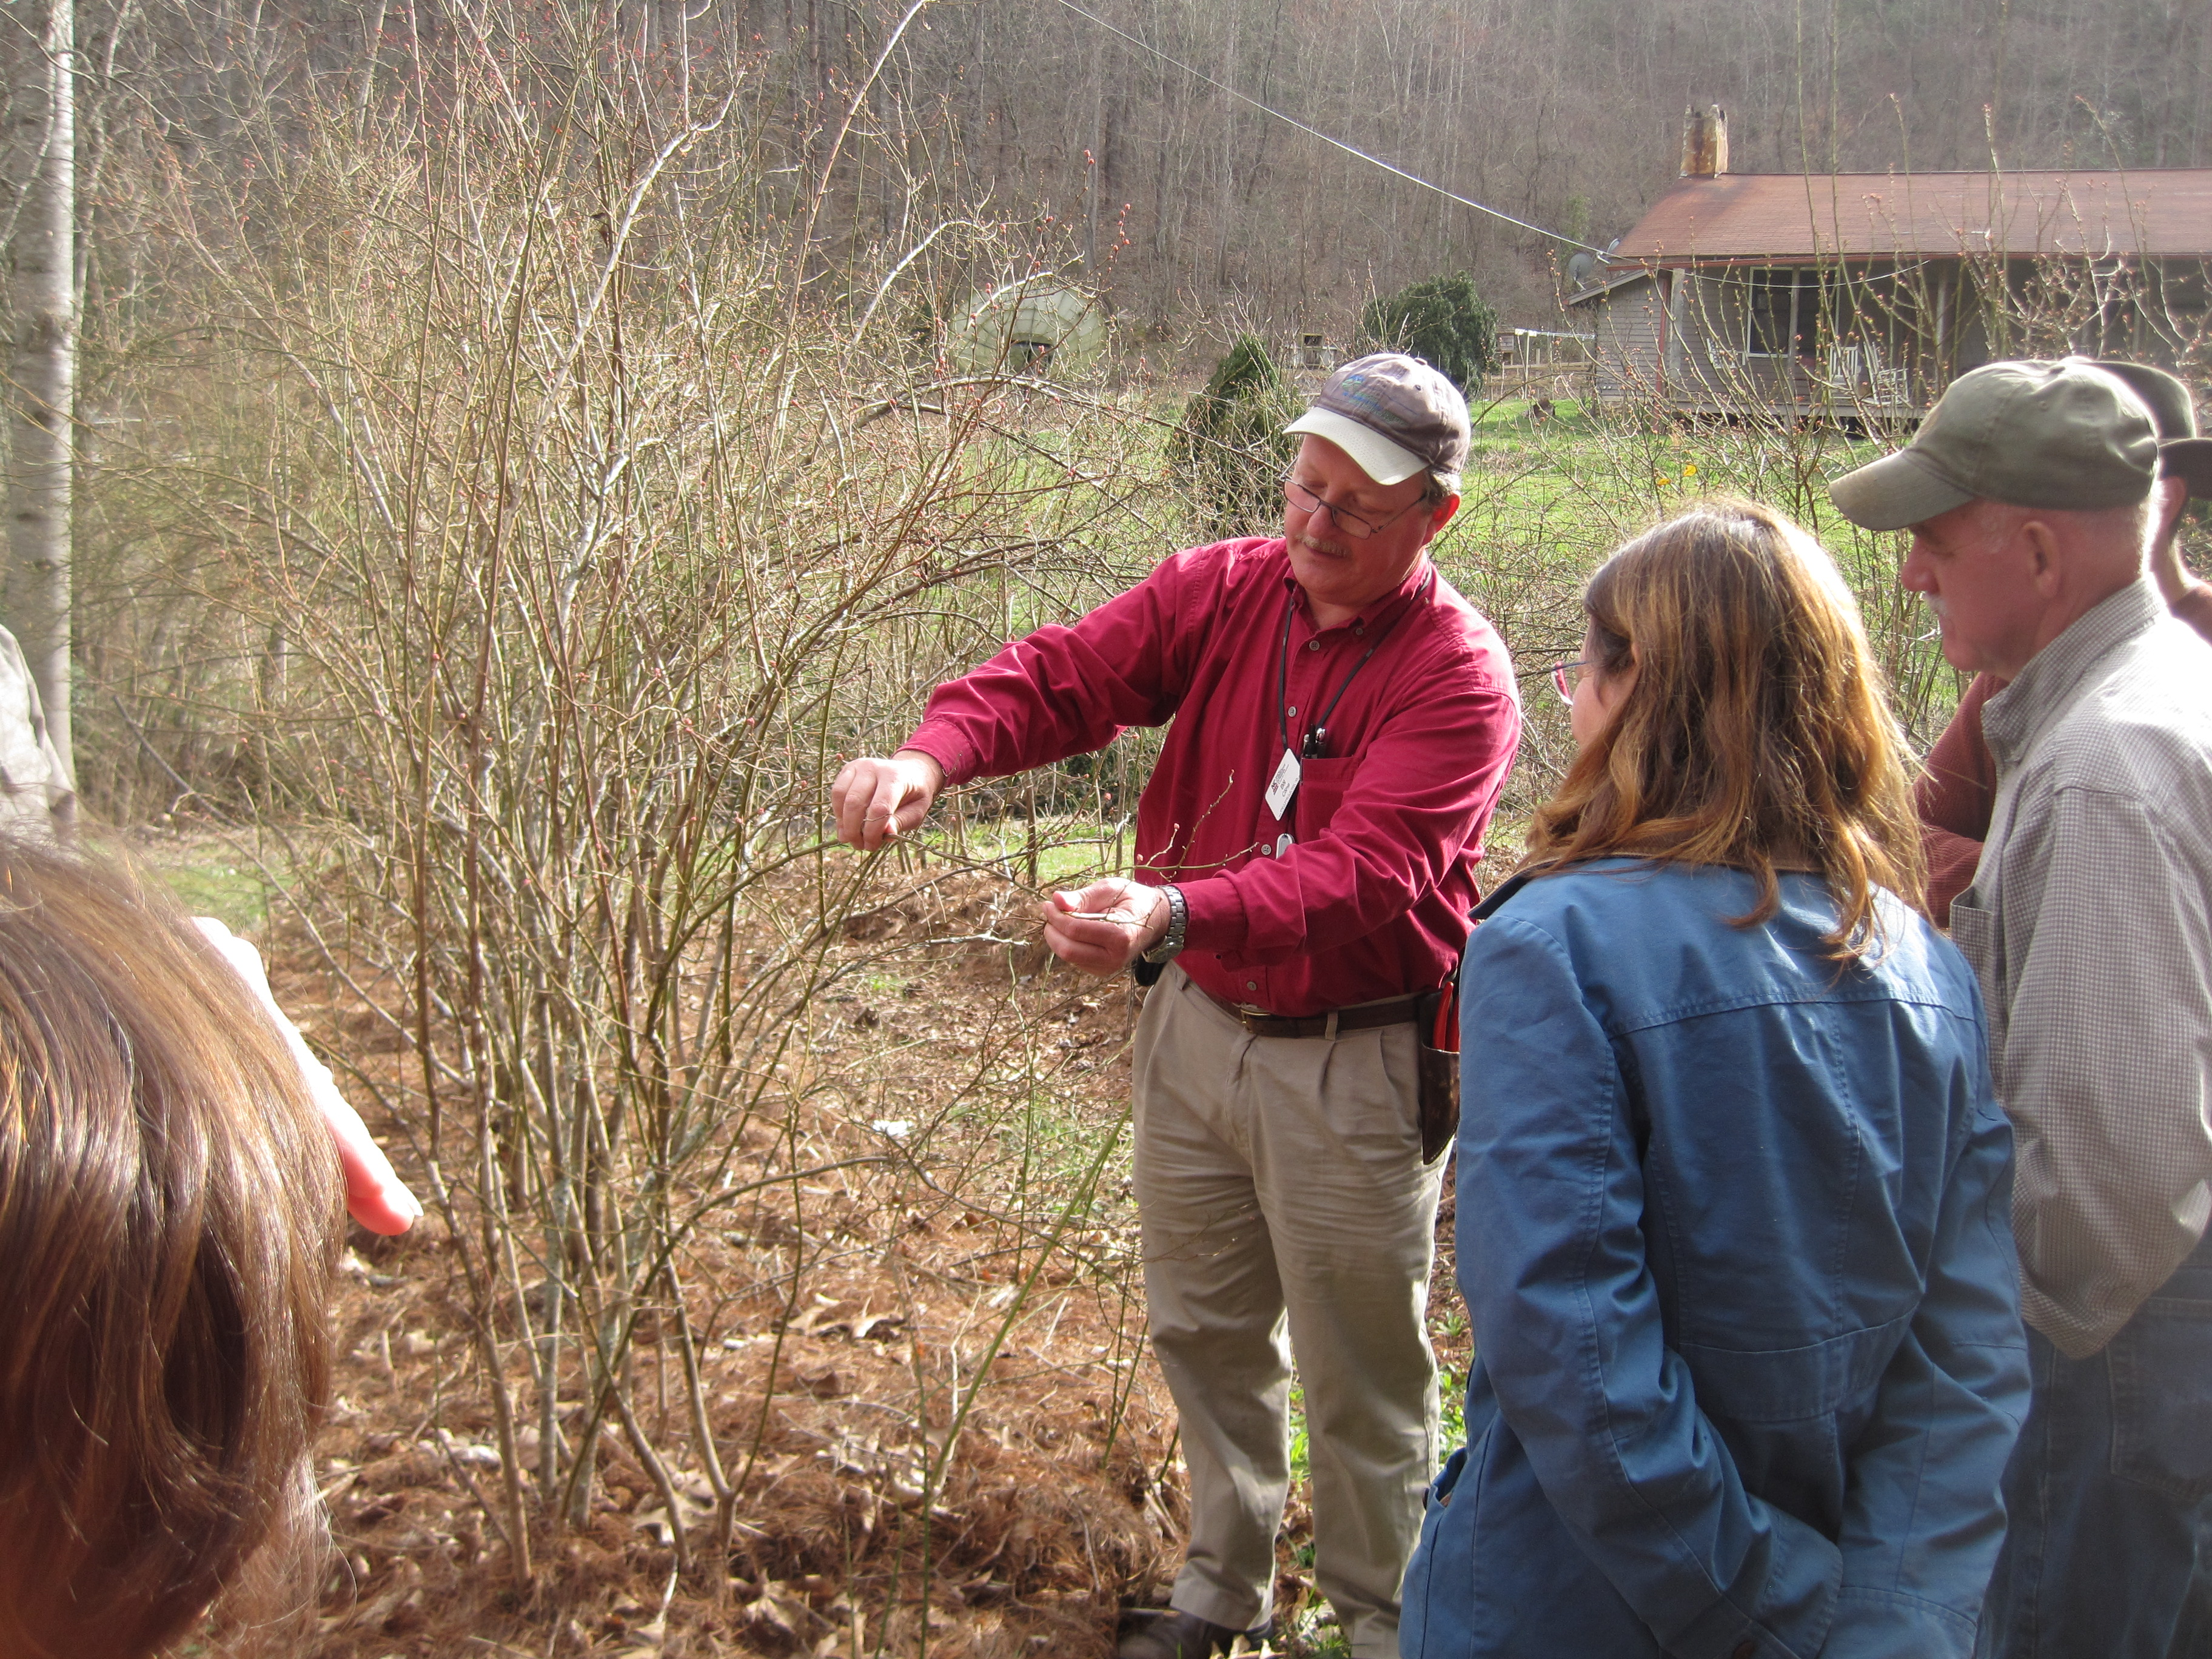 Dr. Bill Cline, NCSU Blueberry Specialist, sharing tips on how to prune blueberries.